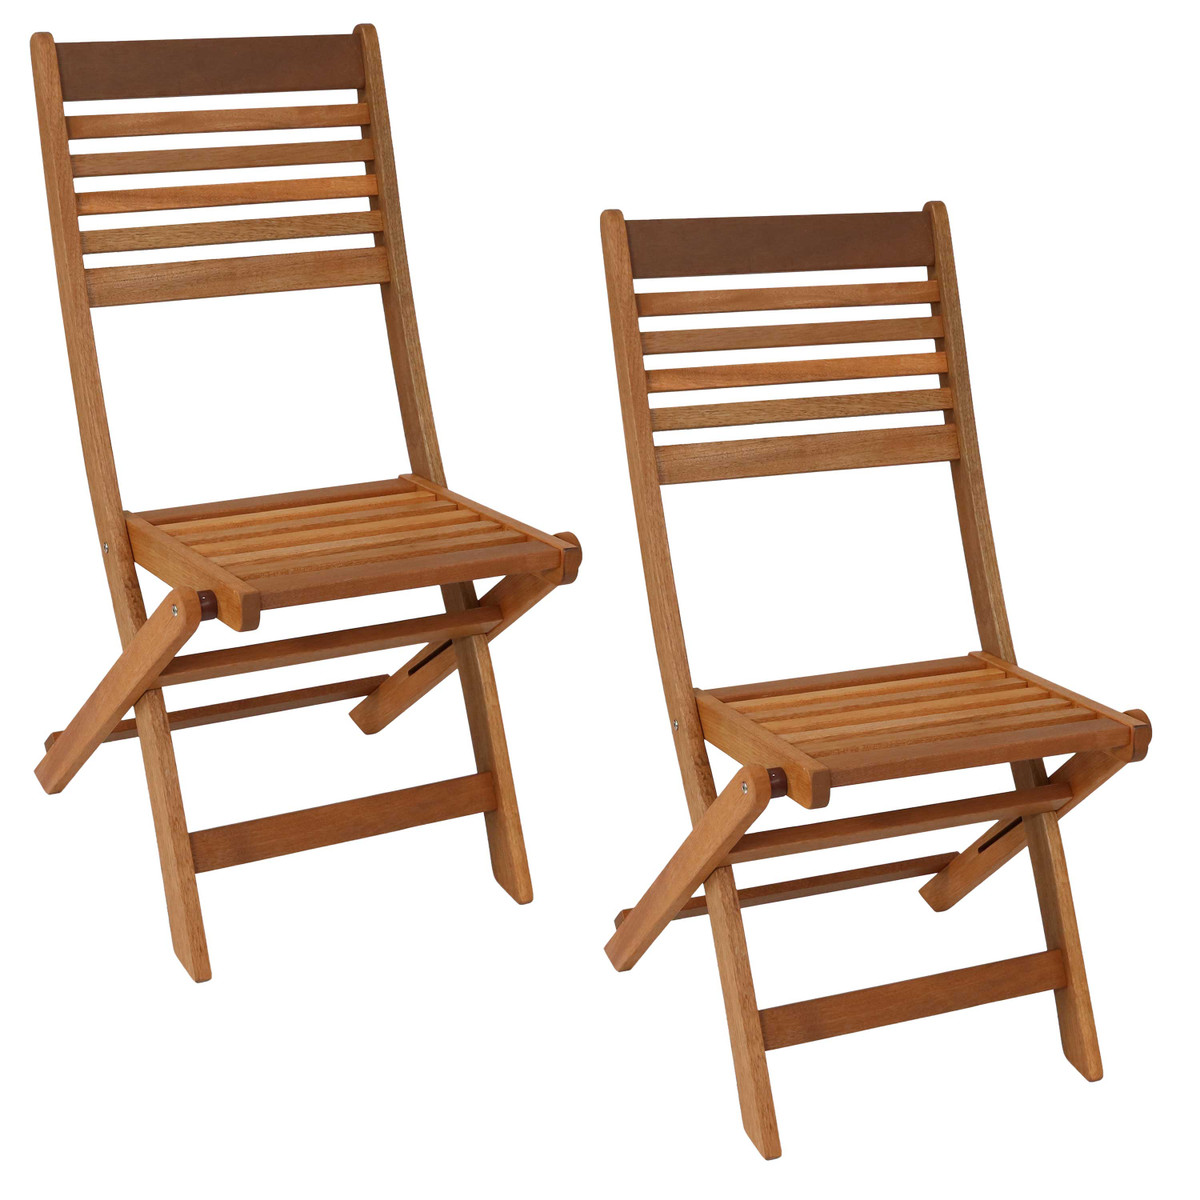 Sunnydaze Meranti Wood With Teak Oil Finish Outdoor Folding Patio Chairs Set Of 2